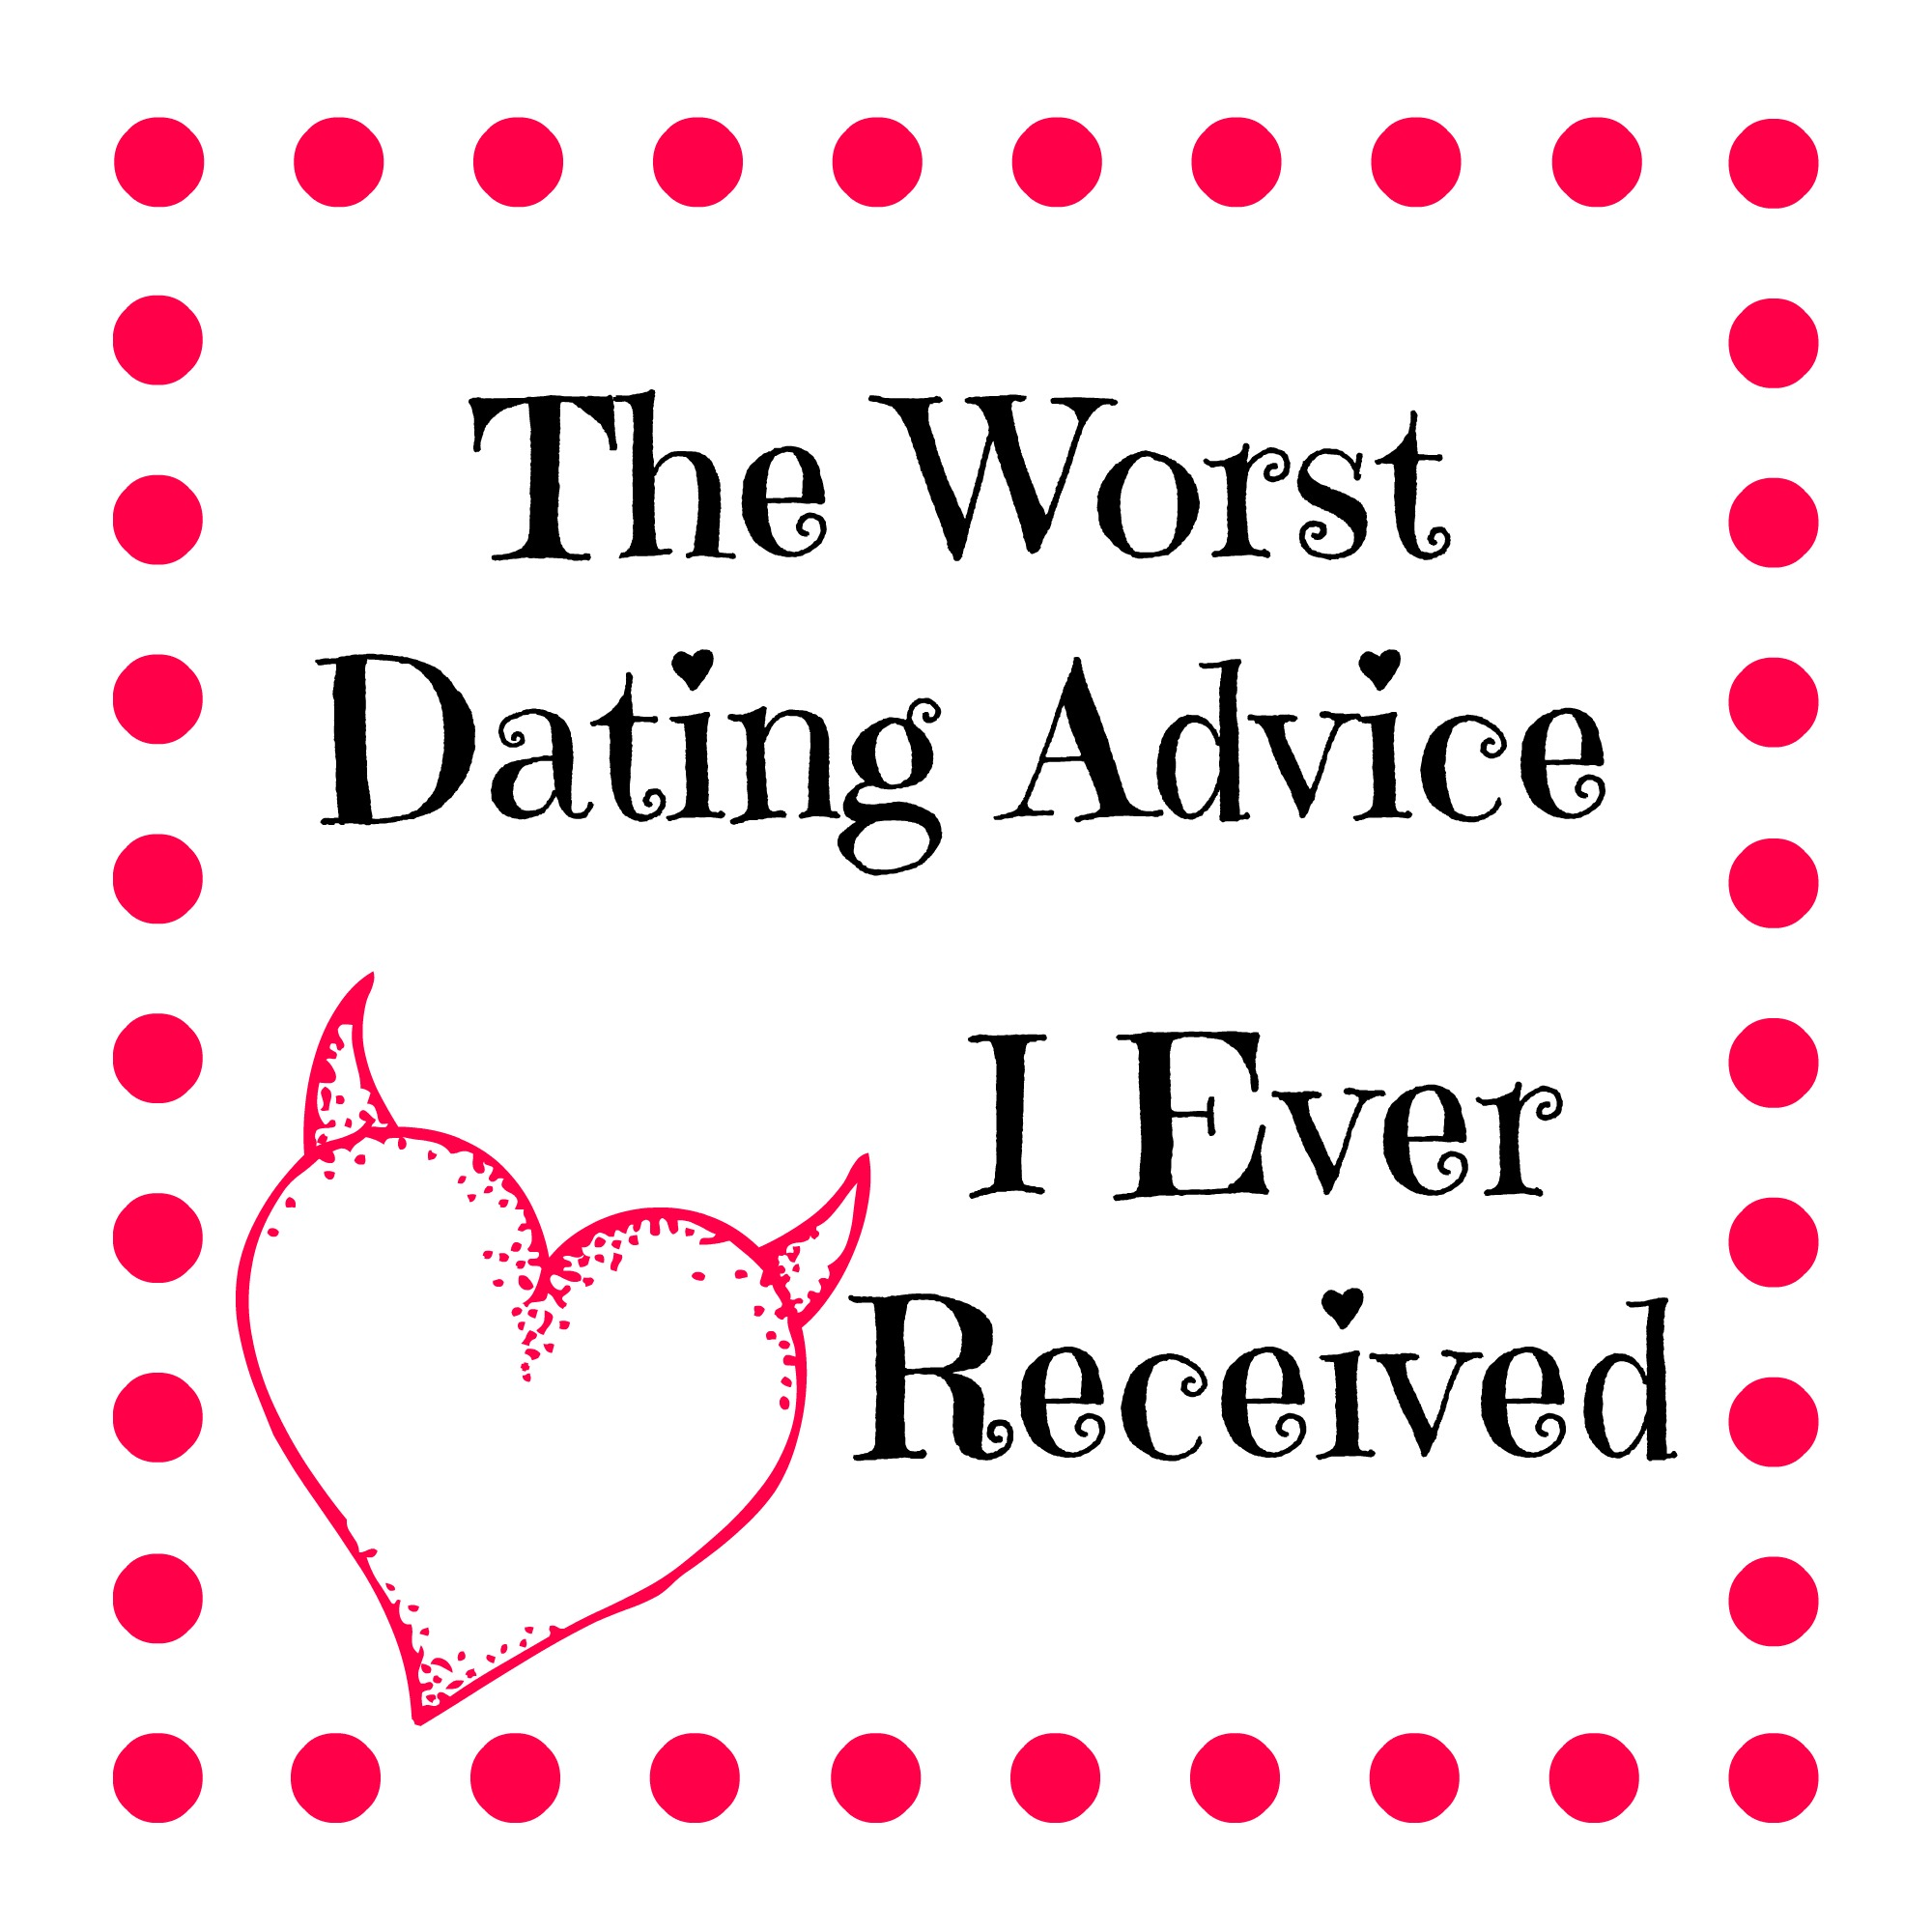 Why dating advice is bad